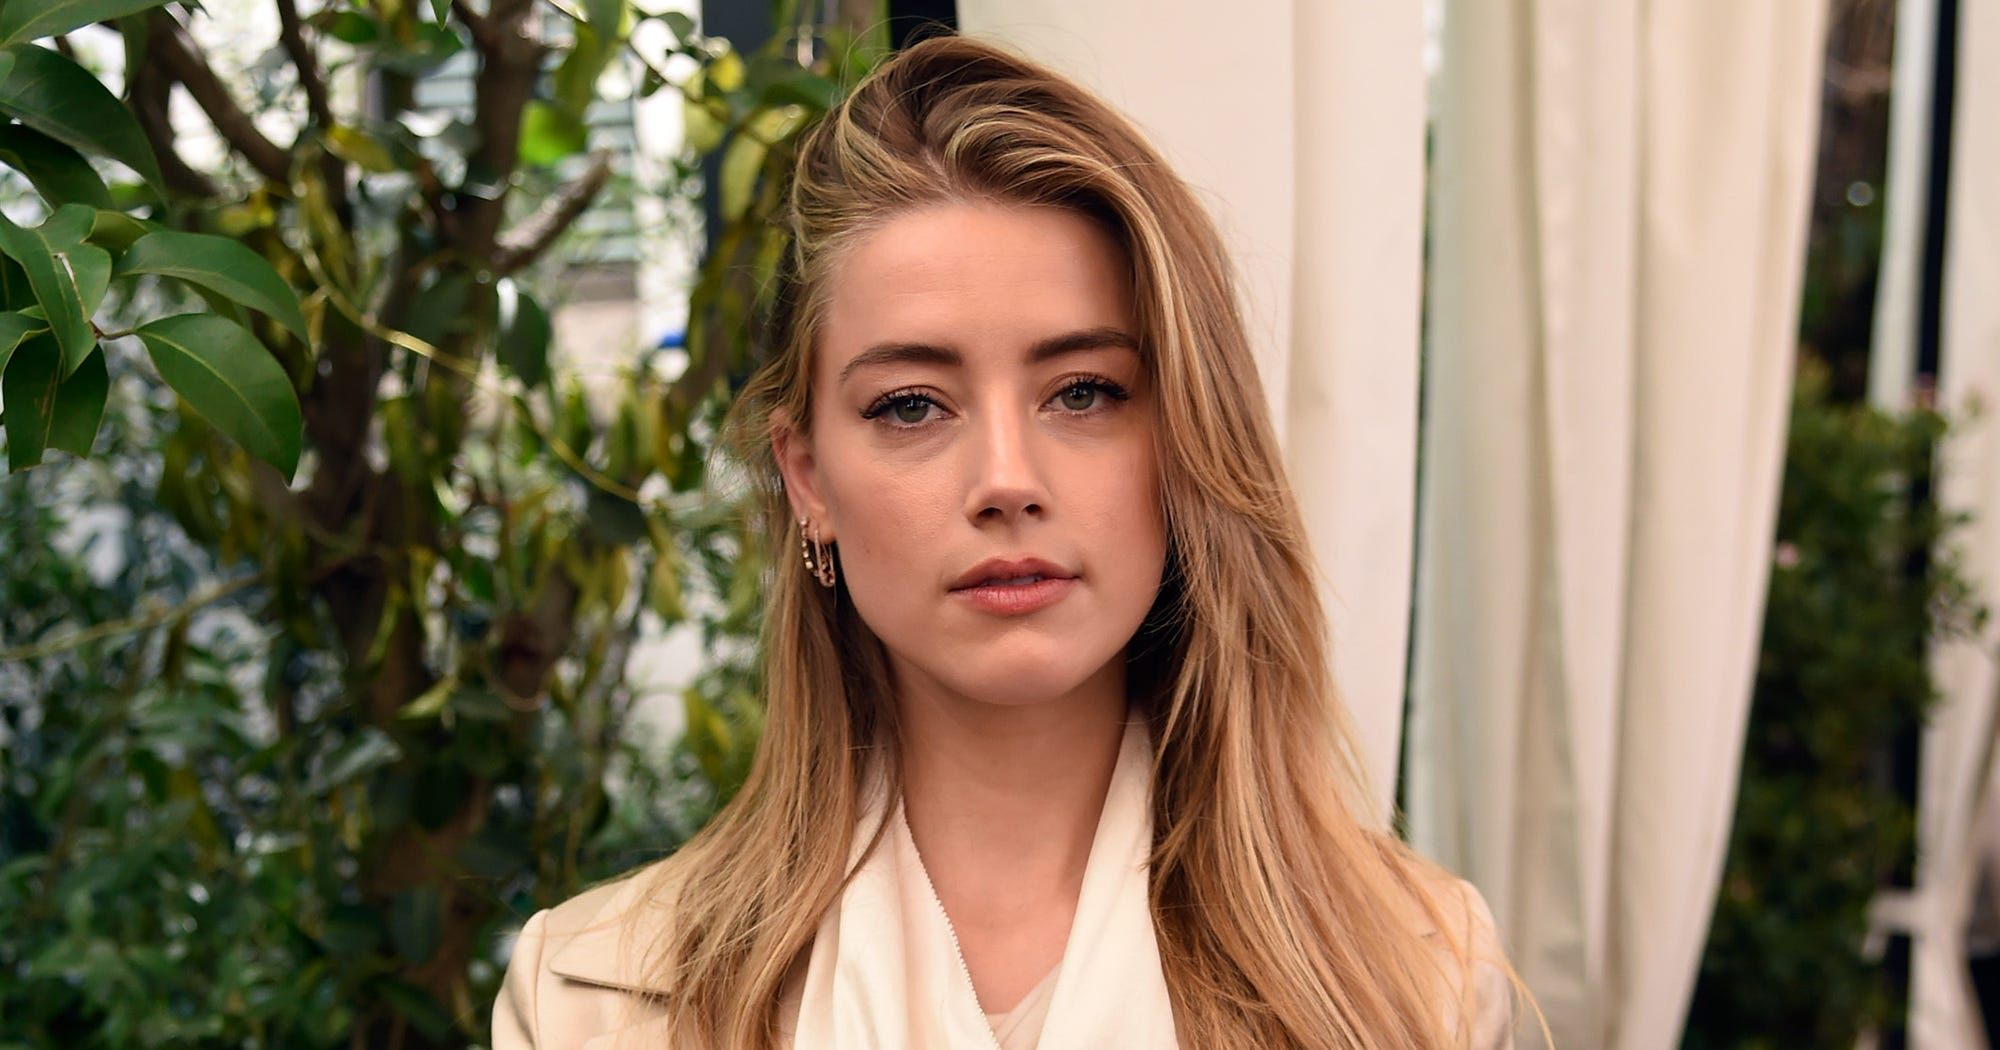 Amber Heard Domestic Violence Arrest 2009 Surfaces